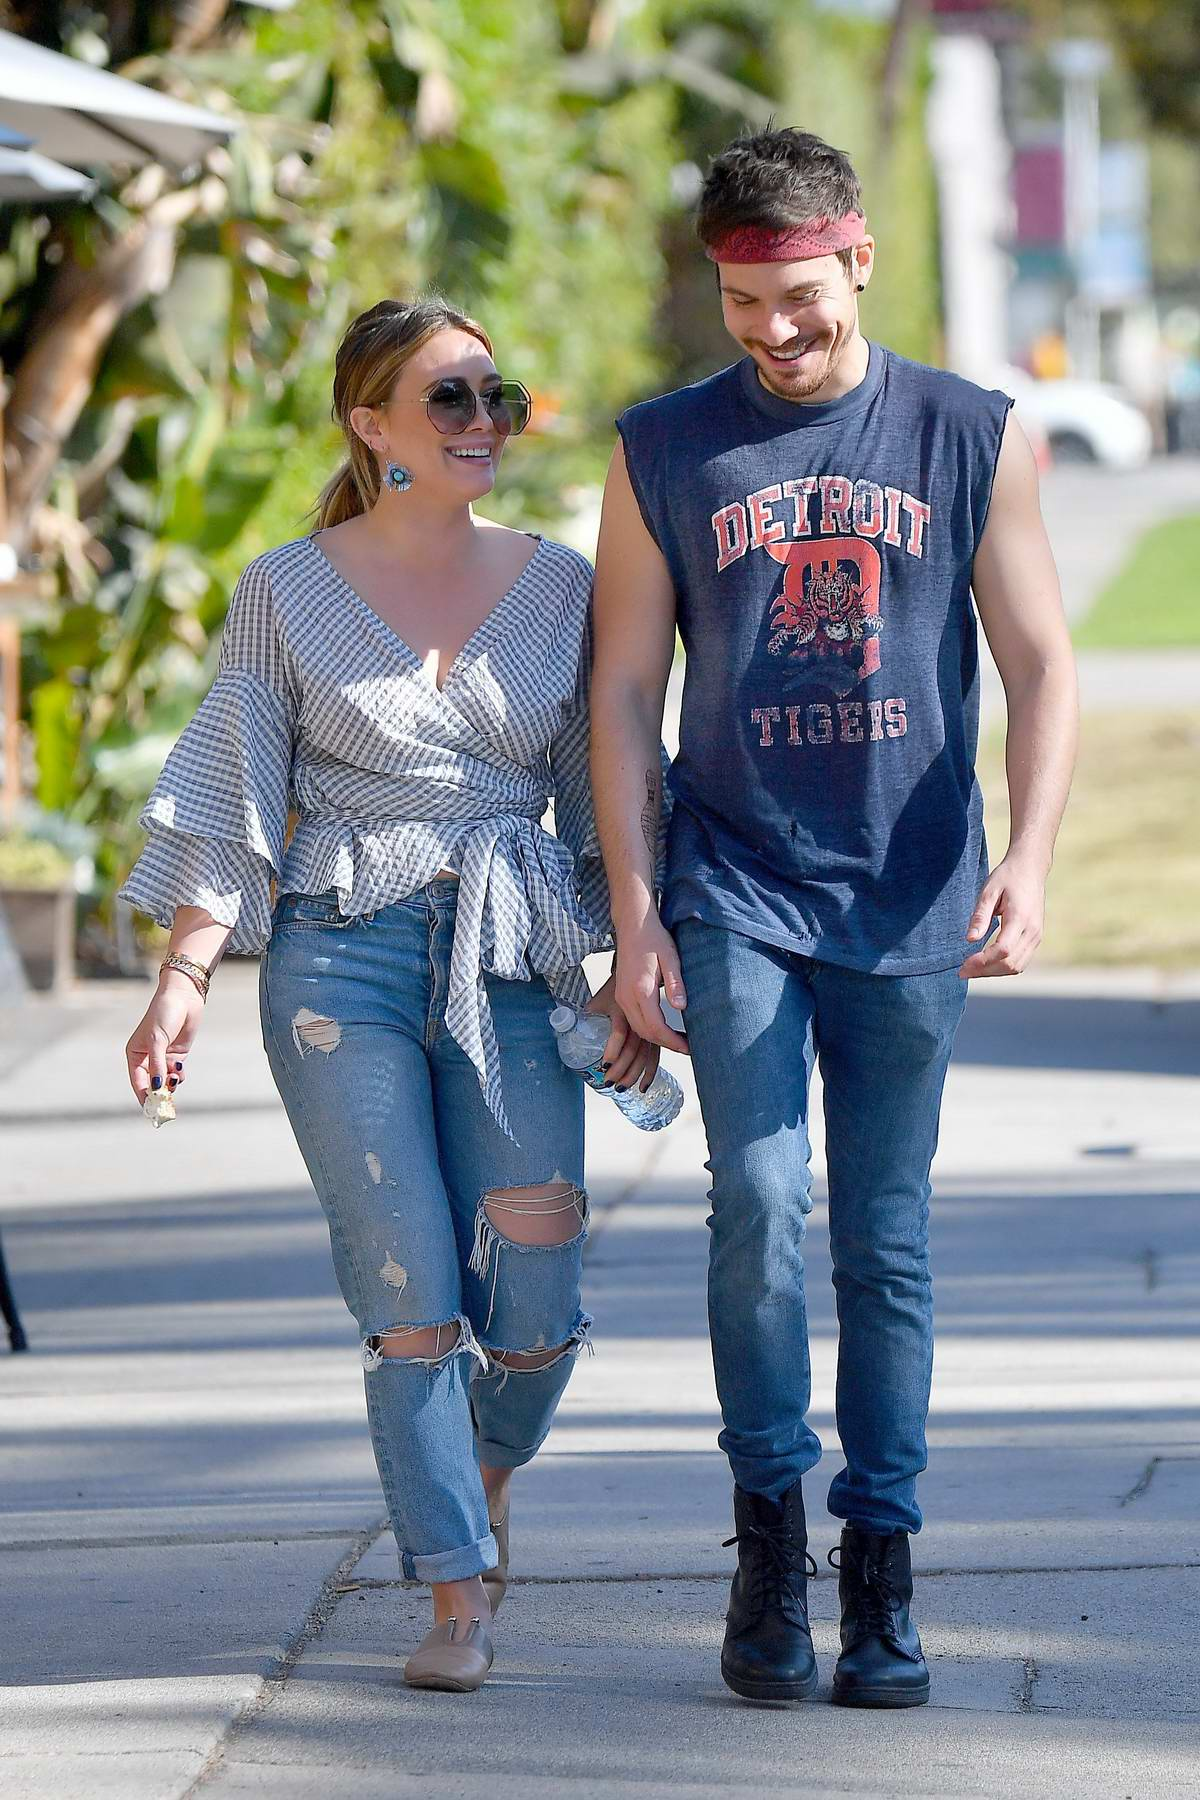 Hilary Duff and boyfriend Matthew Koma spotted at the Fairfax flea market in Los Angeles